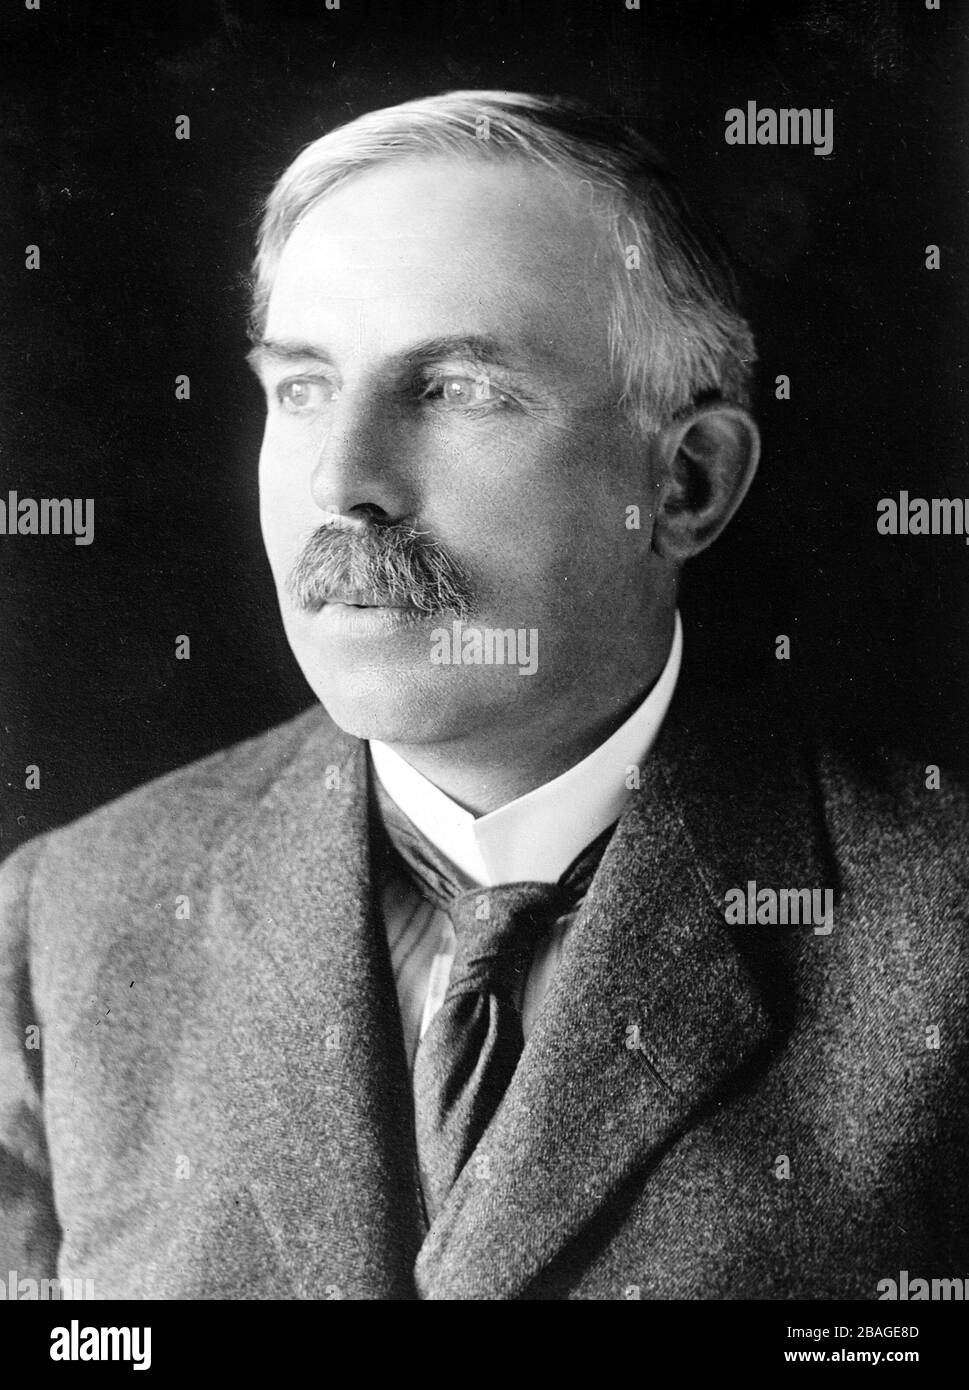 ERNEST RUTHERFORD (1871-1937) New Zealand-born British physicist who pioneered nuclear physics. Stock Photo